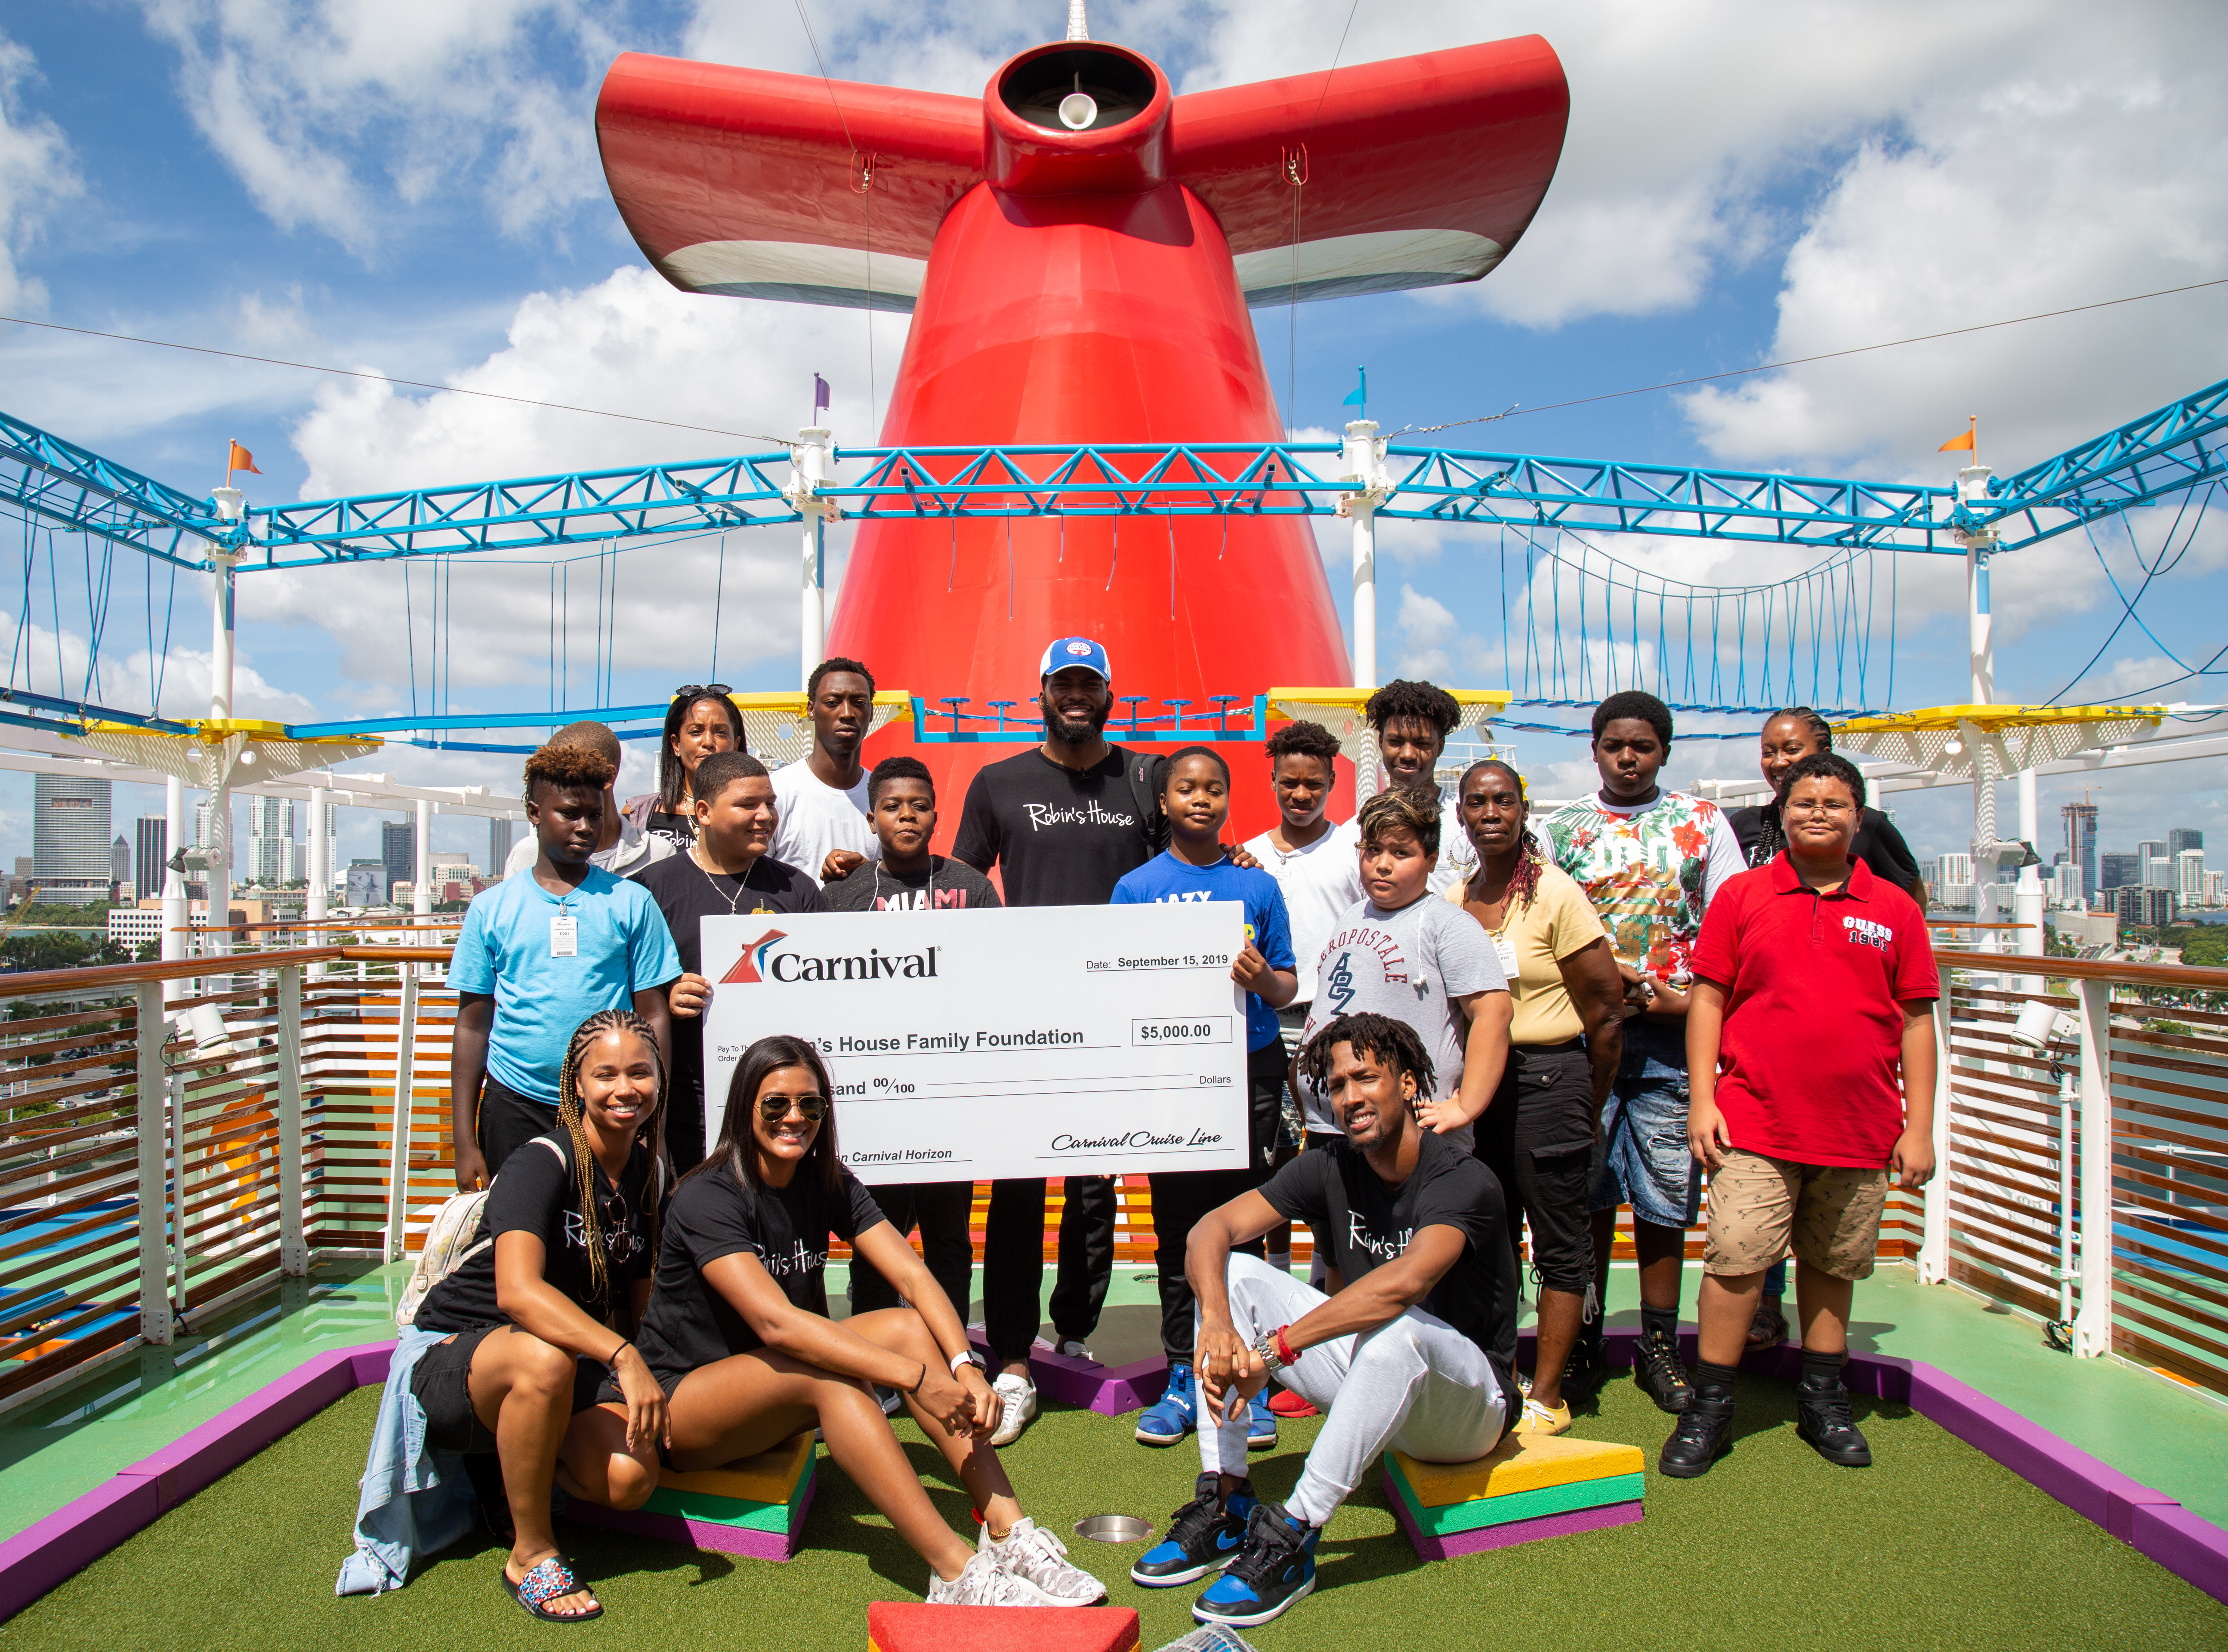 Carnival Cruise Line, Miami HEAT Player Justise Winslow Team Up to Offer Day of Fun for Underprivileged Kids Aboard Carnival Horizon